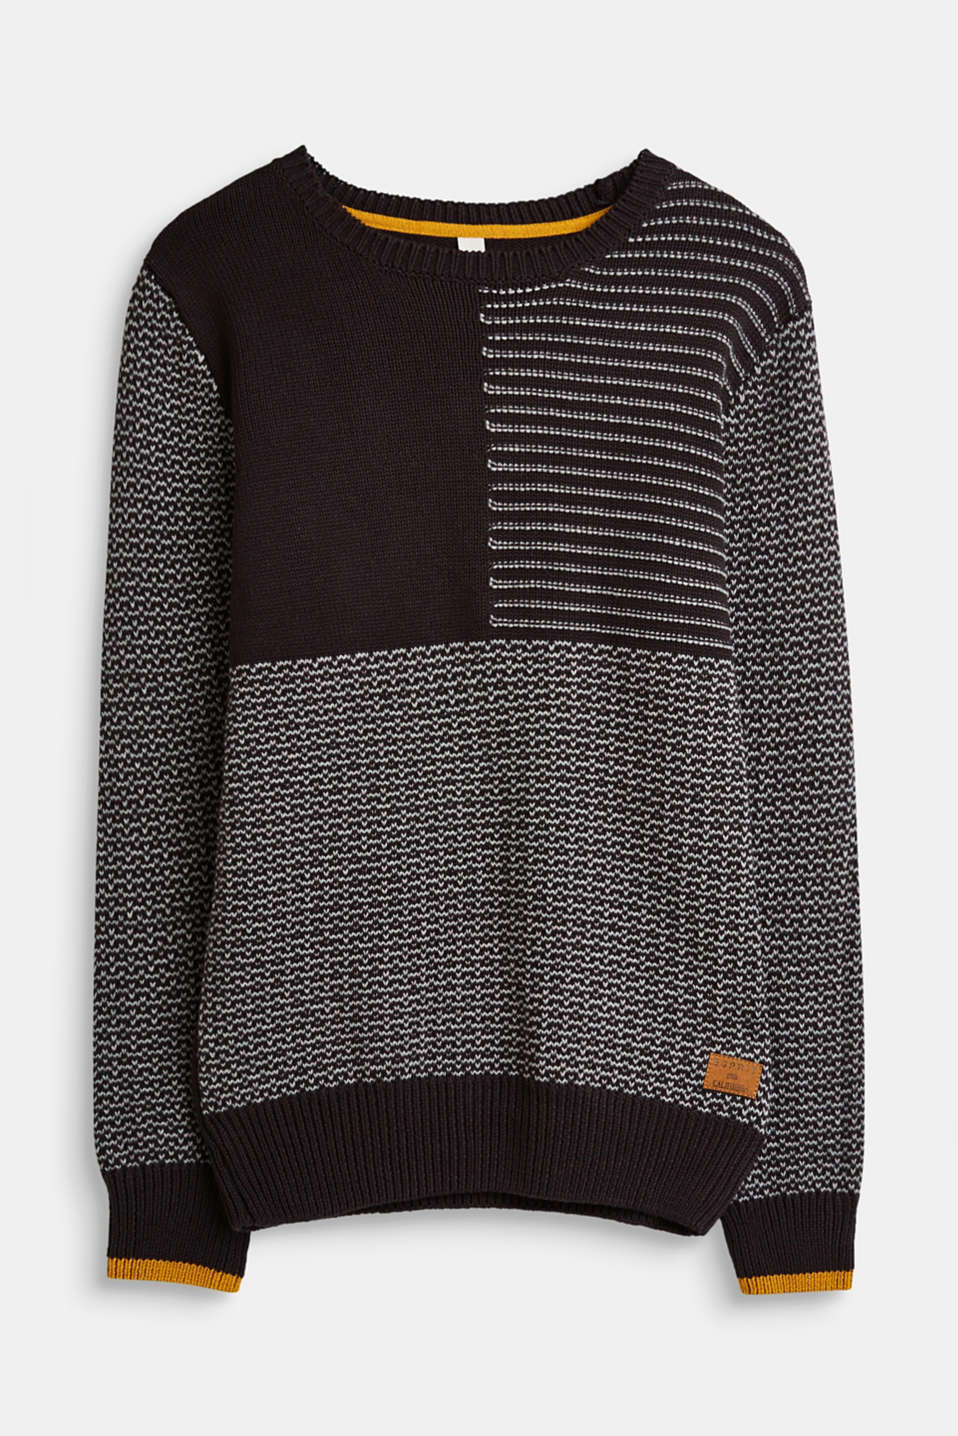 Esprit - Jumper with a mix of textures, 100% cotton